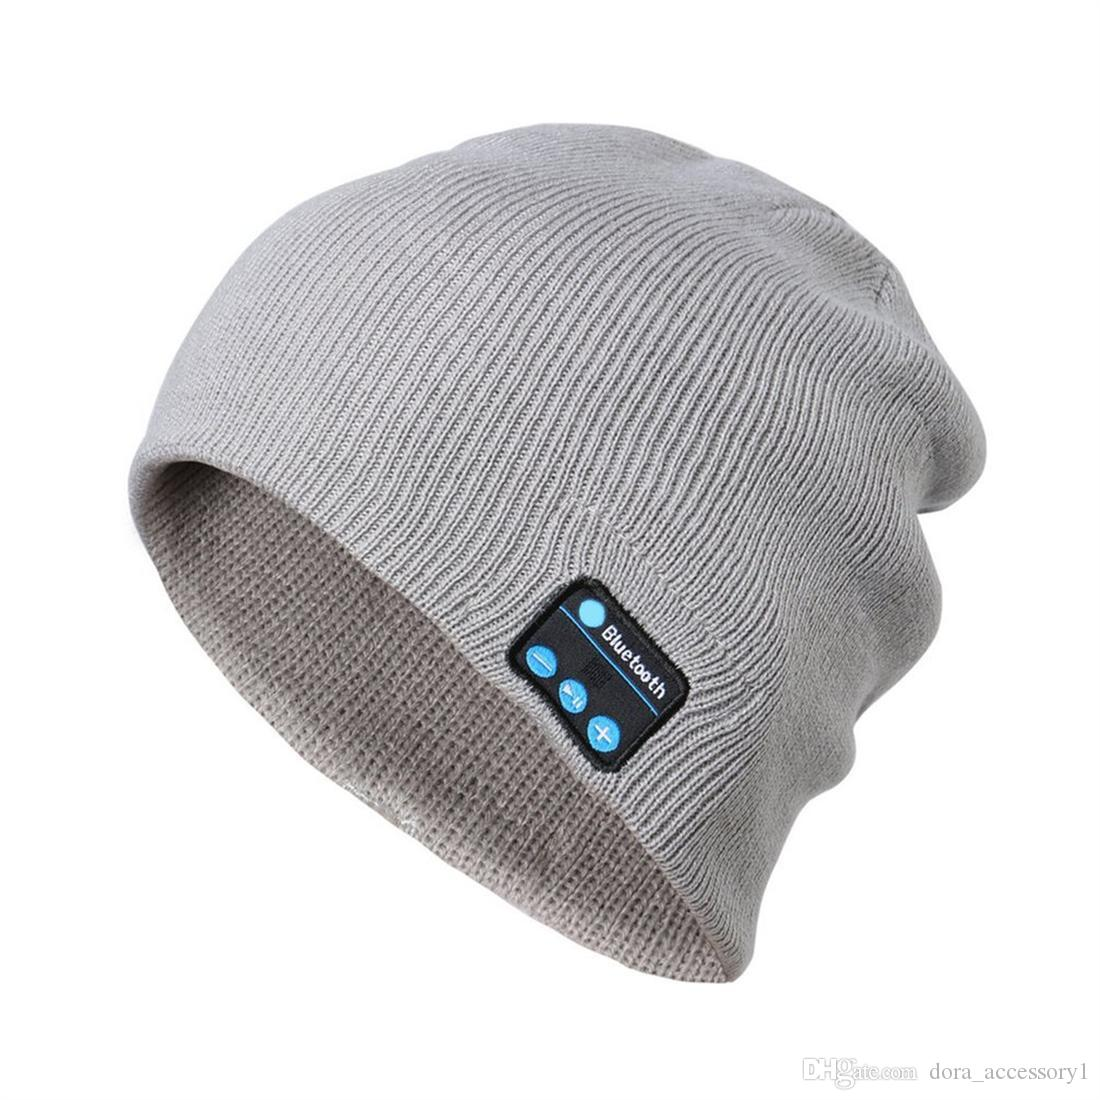 19027ef02de 2019 Rushed Time Limited Beanie Skull Cap Grey Unisex Spring   Fall Dora  Bluetooth Music Hat Winter Warm Beanies Knitted With Mic For Sports  Headwear ...